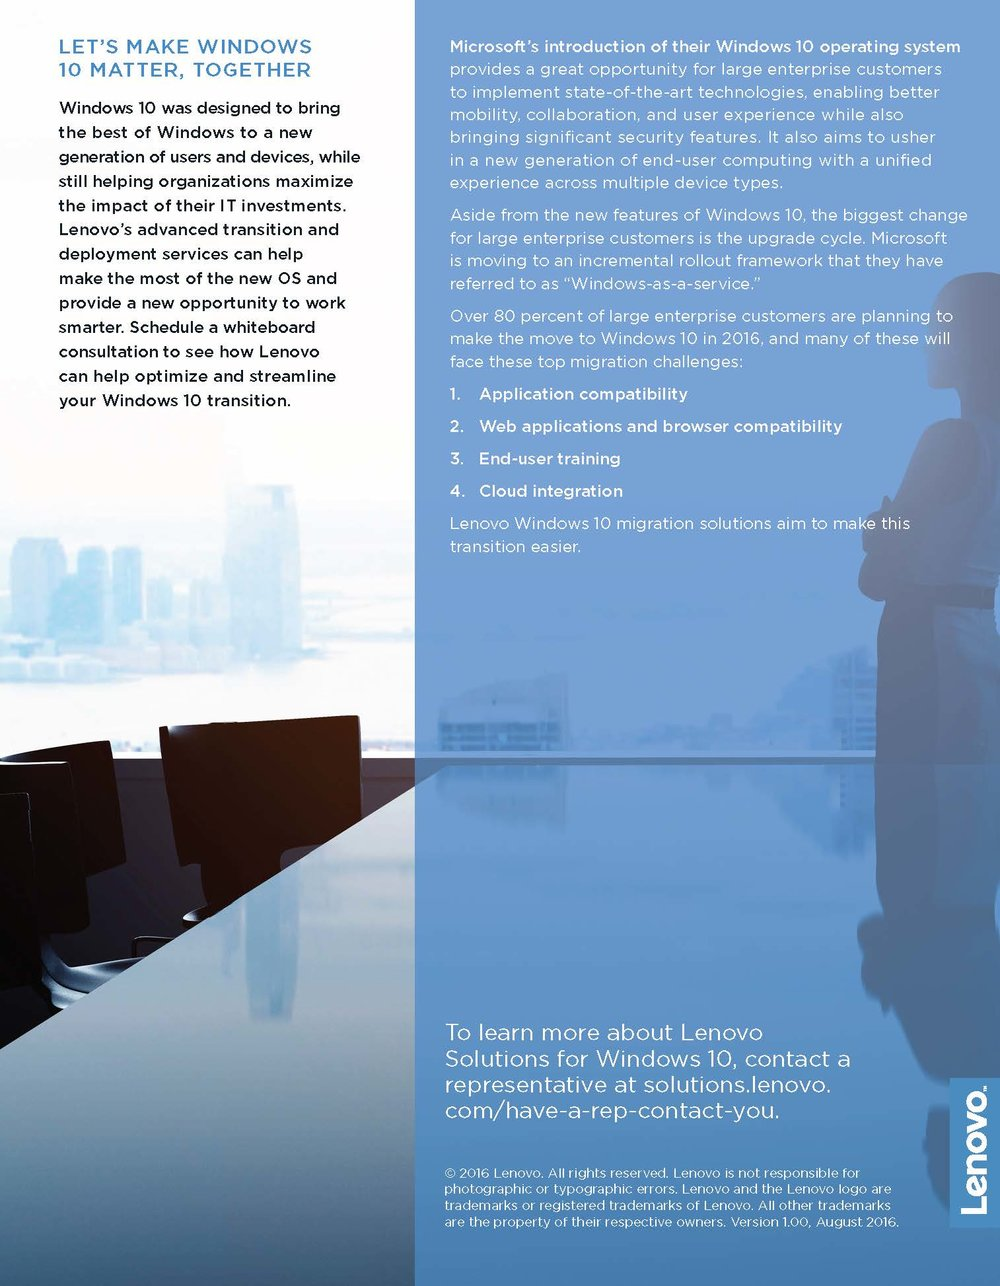 LEN_0816_1468_WW_Windows10 Migration Solutions Flyer_SH_4.4_Page_4.jpg